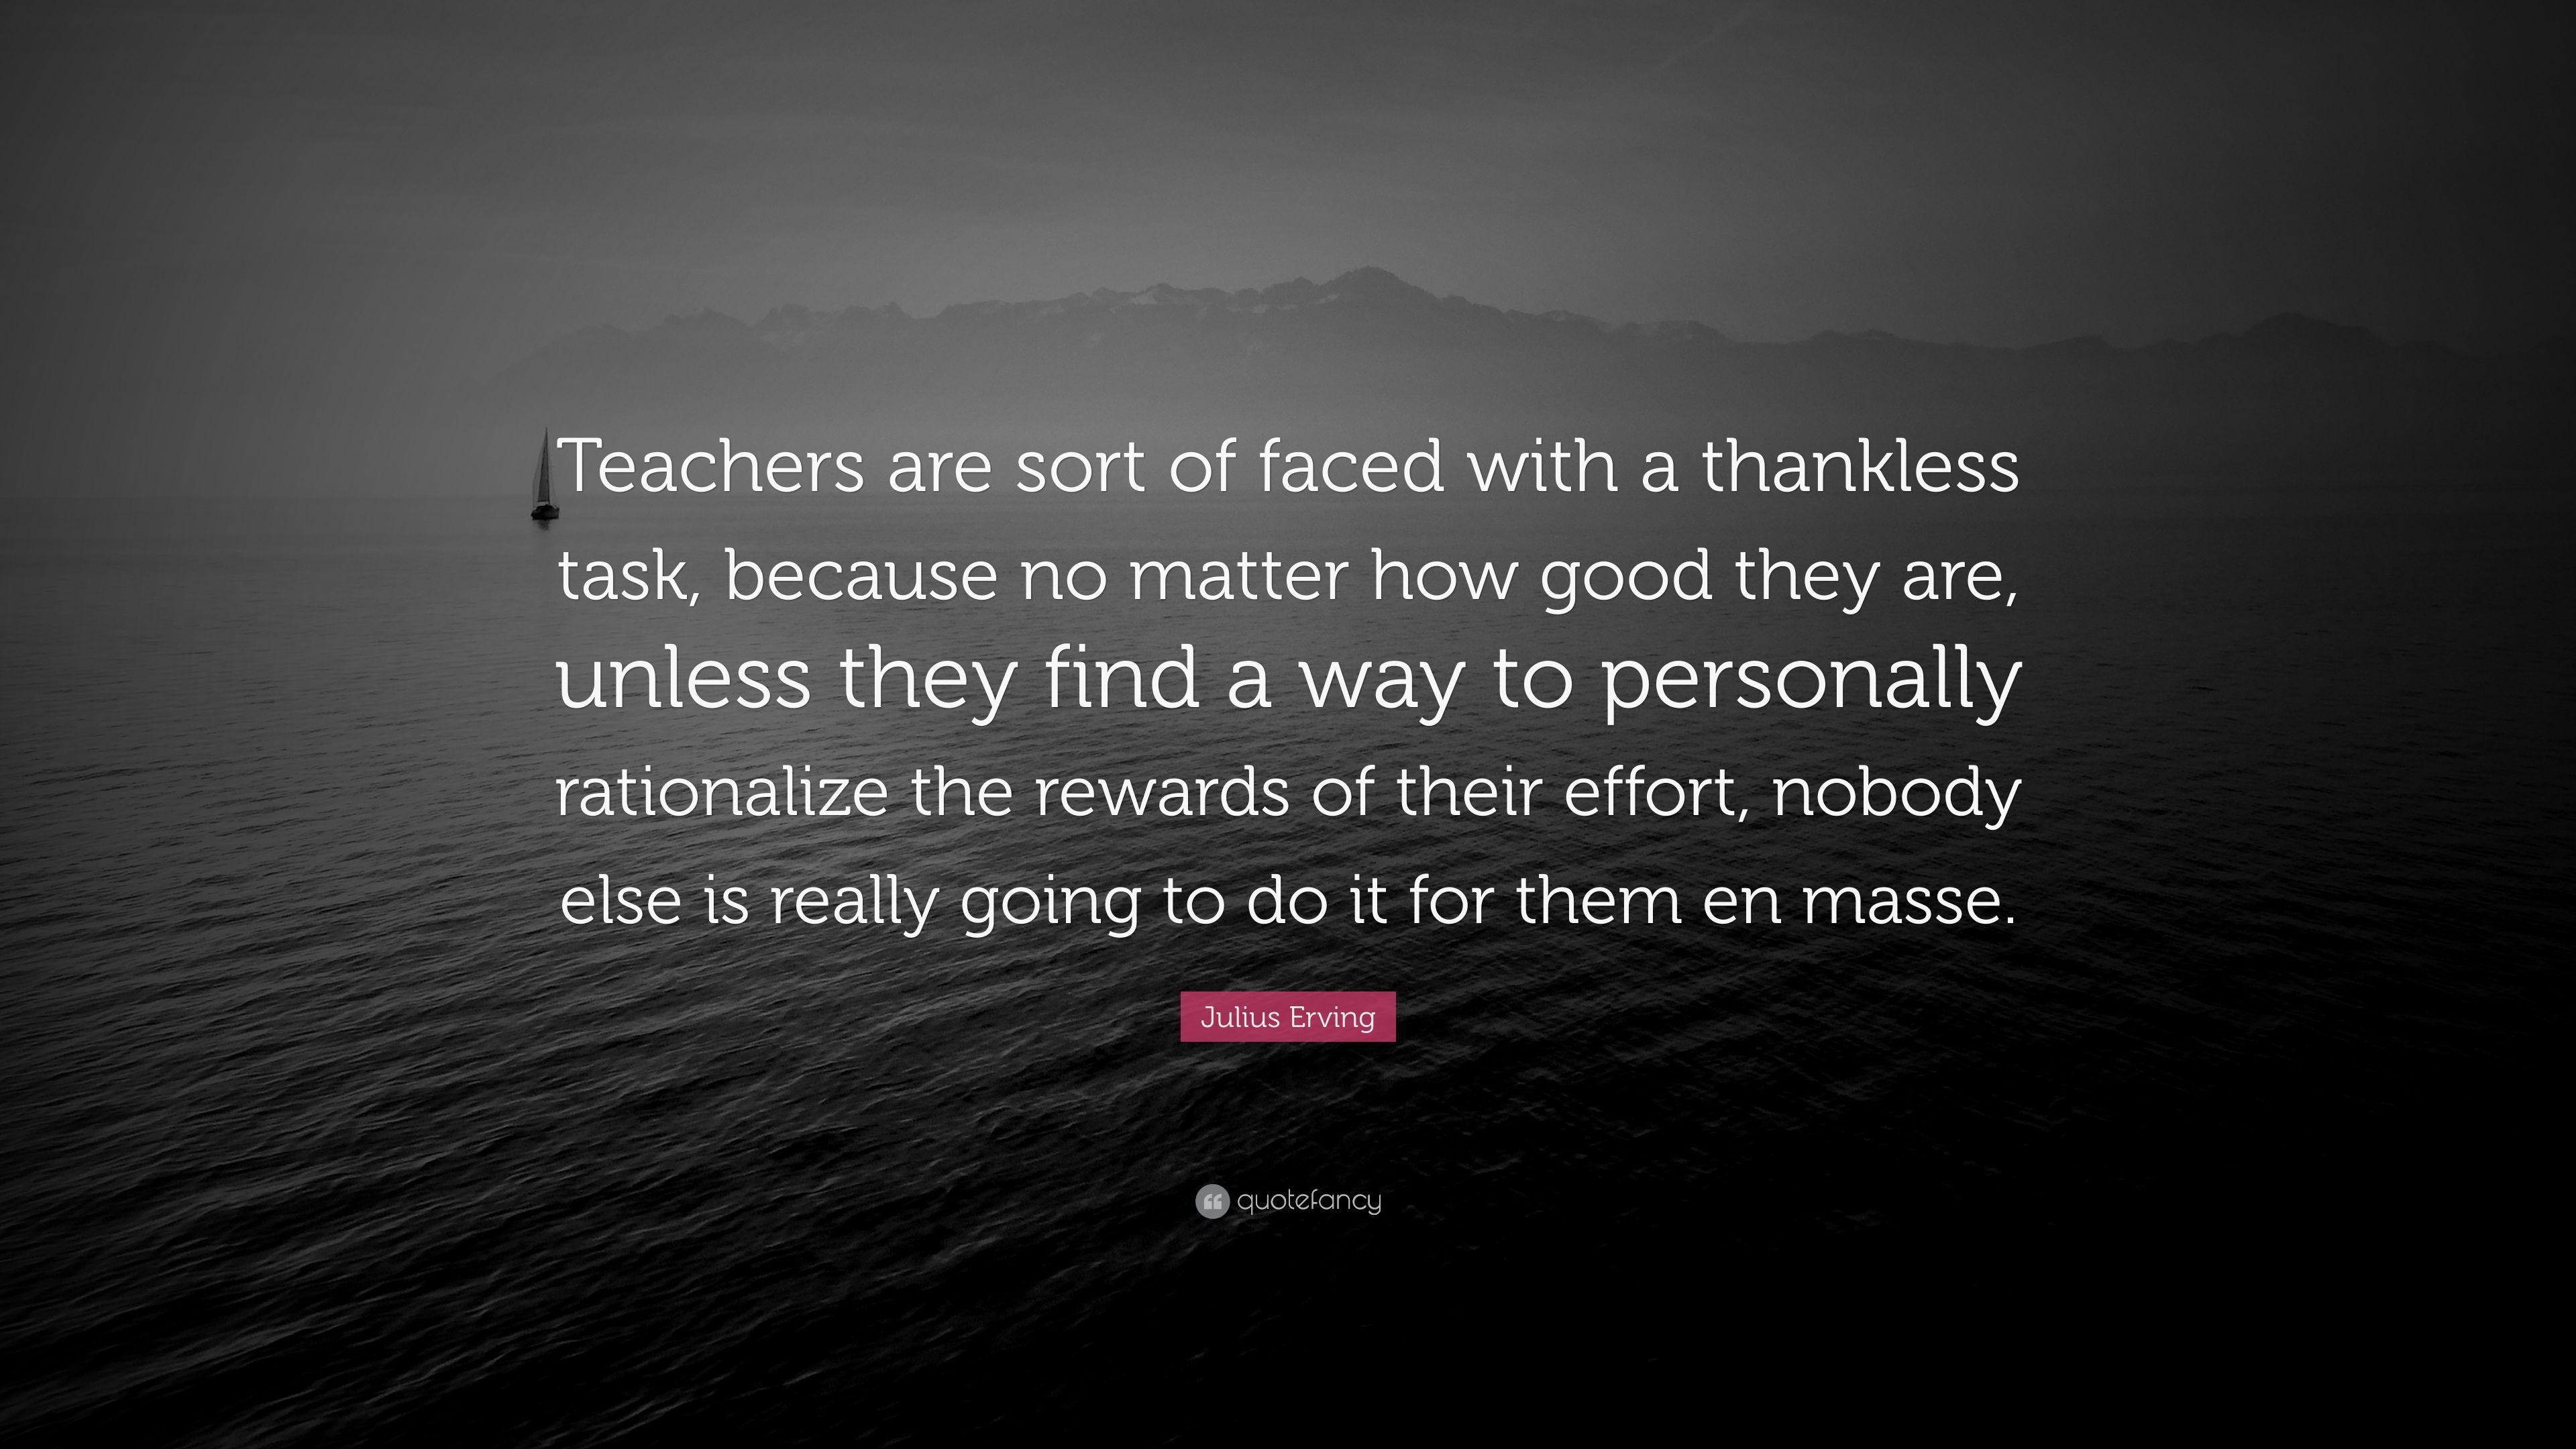 """Julius Erving Quote: """"Teachers are sort of faced with a thankless task,  because no matter how good they are, unless they find a way to persona...""""  (7 wallpapers) - Quotefancy"""